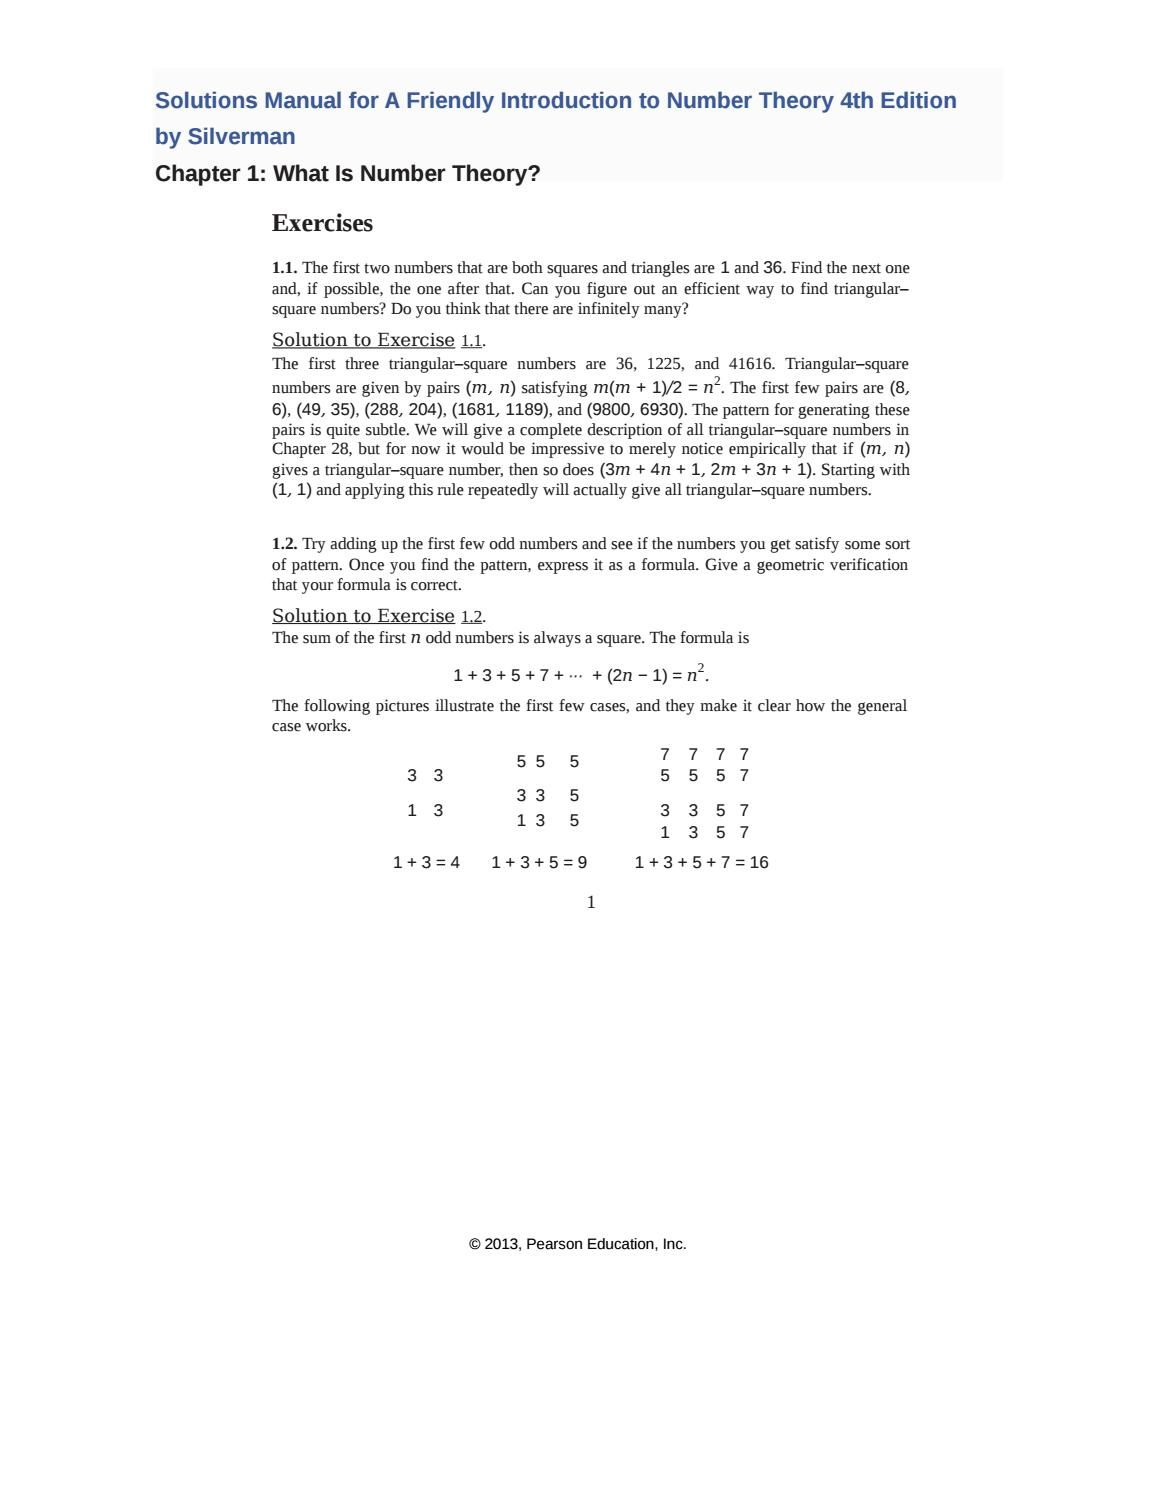 Solutions Manual For A Friendly Introduction To Number Theory 4th Edition By Silverman Number Theory Solutions Manual